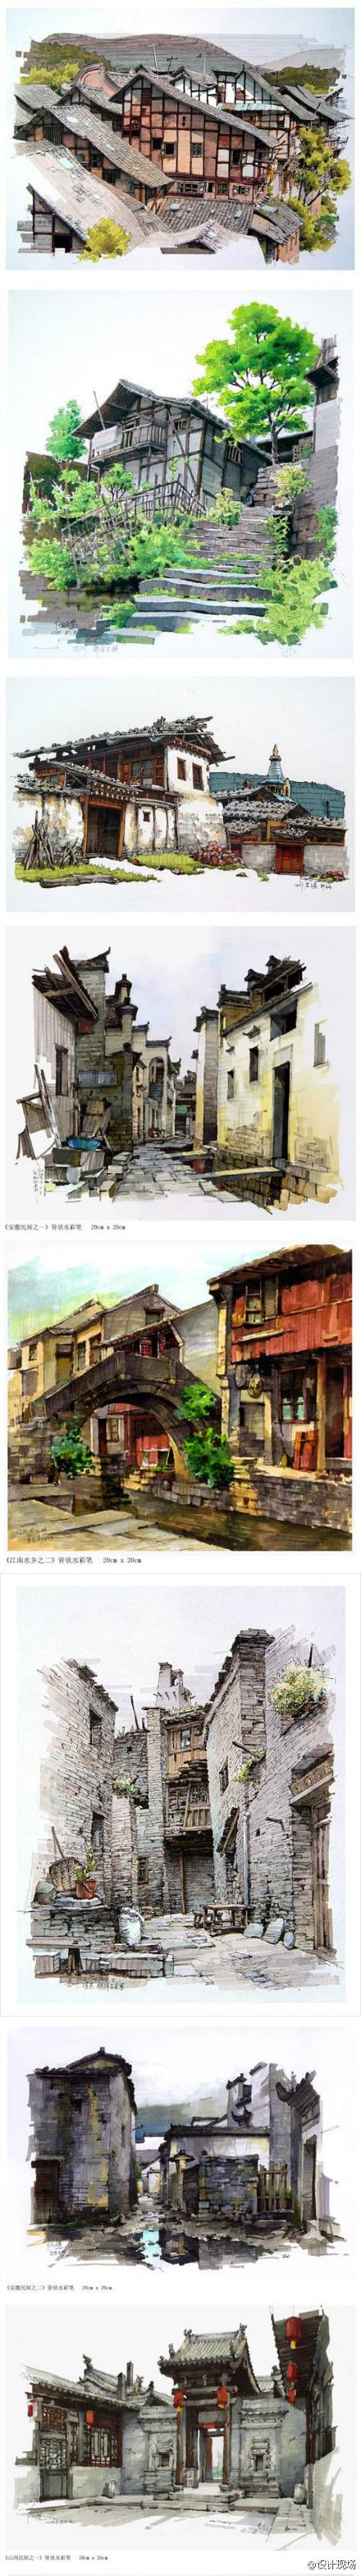 Fine Art Architectural Painting, Artist Study Resources for Art Students, CAPI ::: Create Art Portfolio Ideas at milliande.com , Inspiration for Art School Portfolio Work, How to Paint Buildings and Architecture